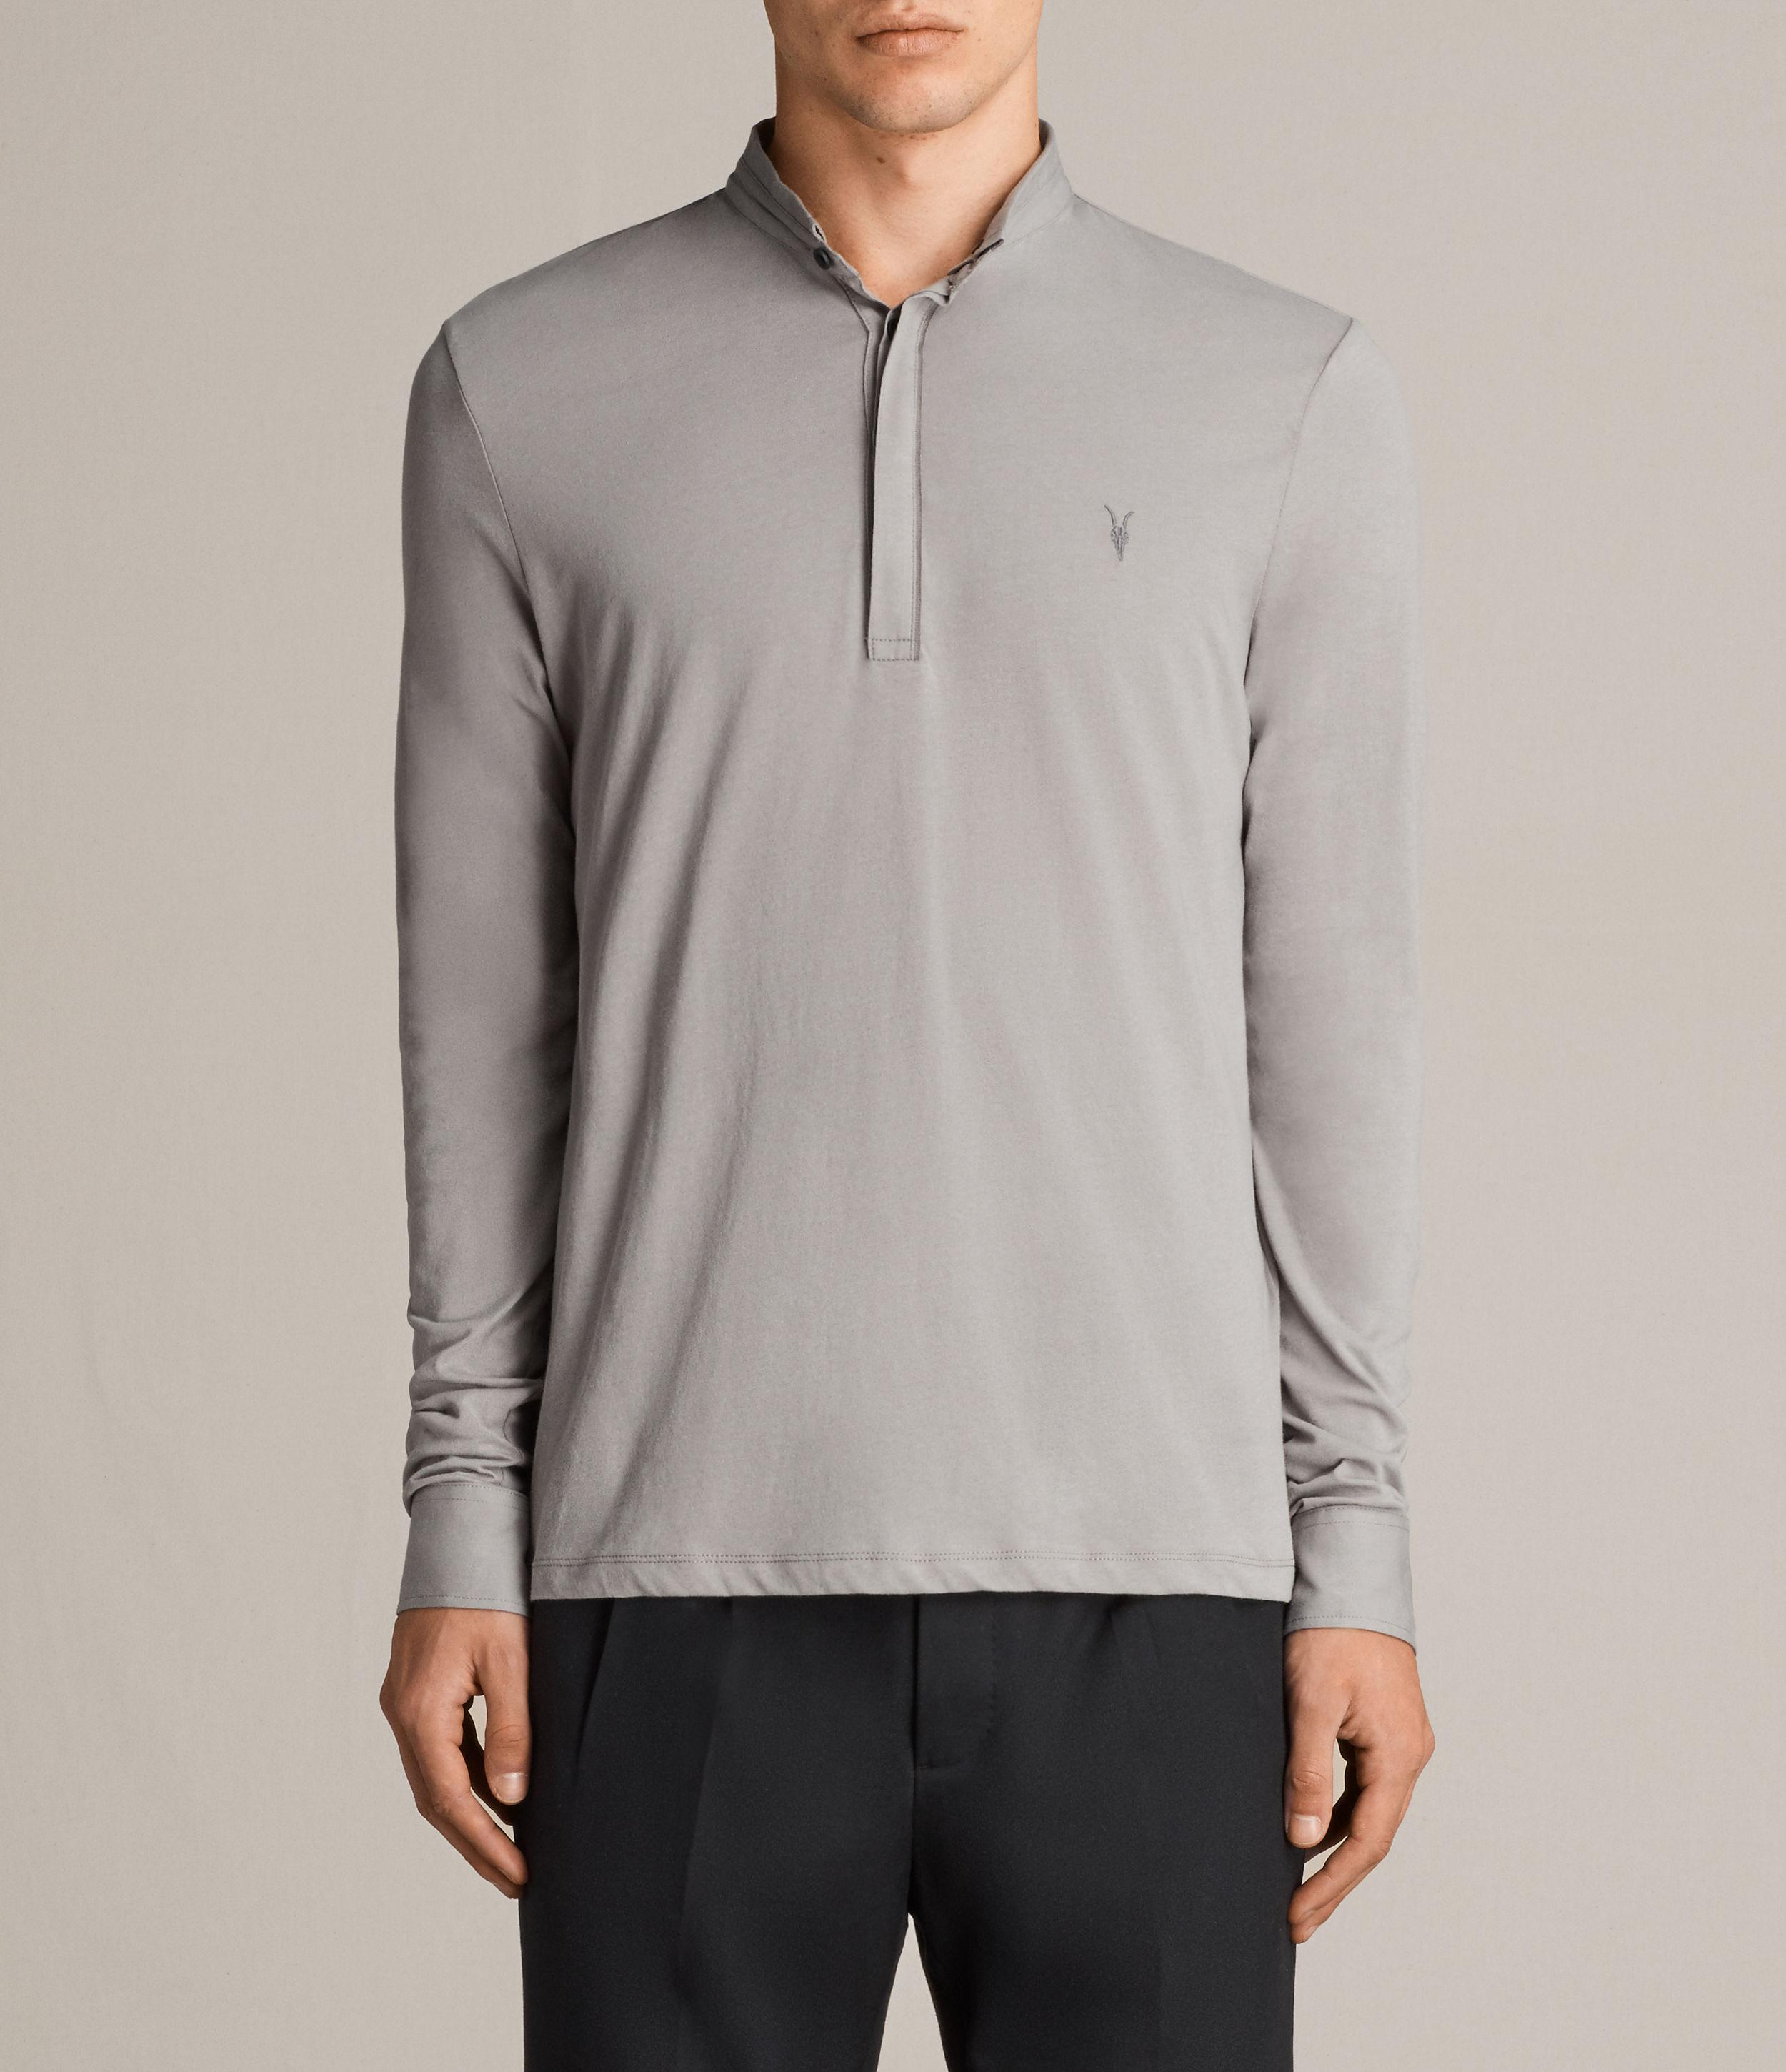 Allsaints grail long sleeve polo shirt in grey for men lyst for All saints polo shirt